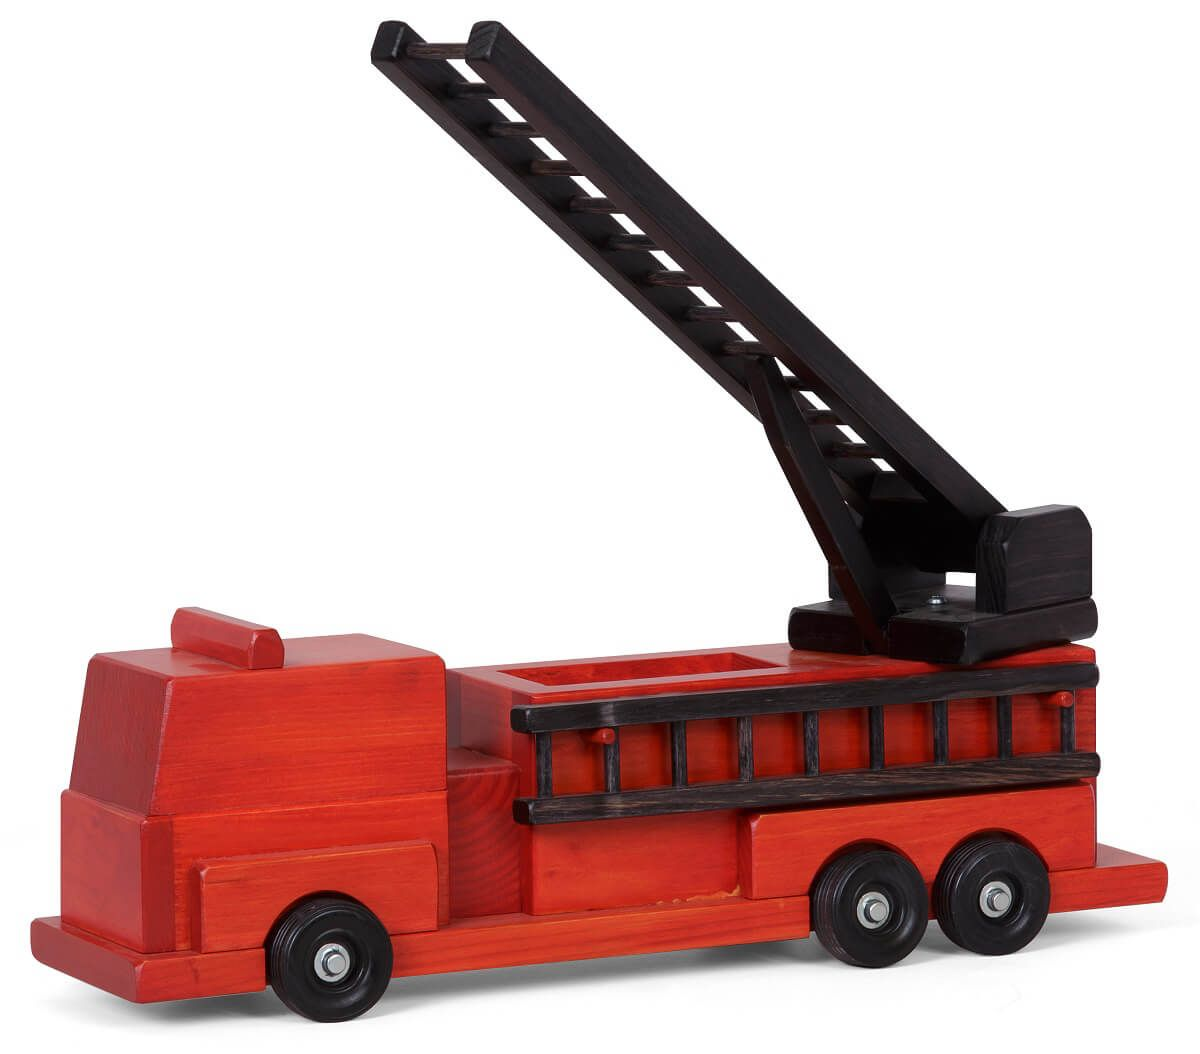 Handcrafted Painted Firetruck Toy